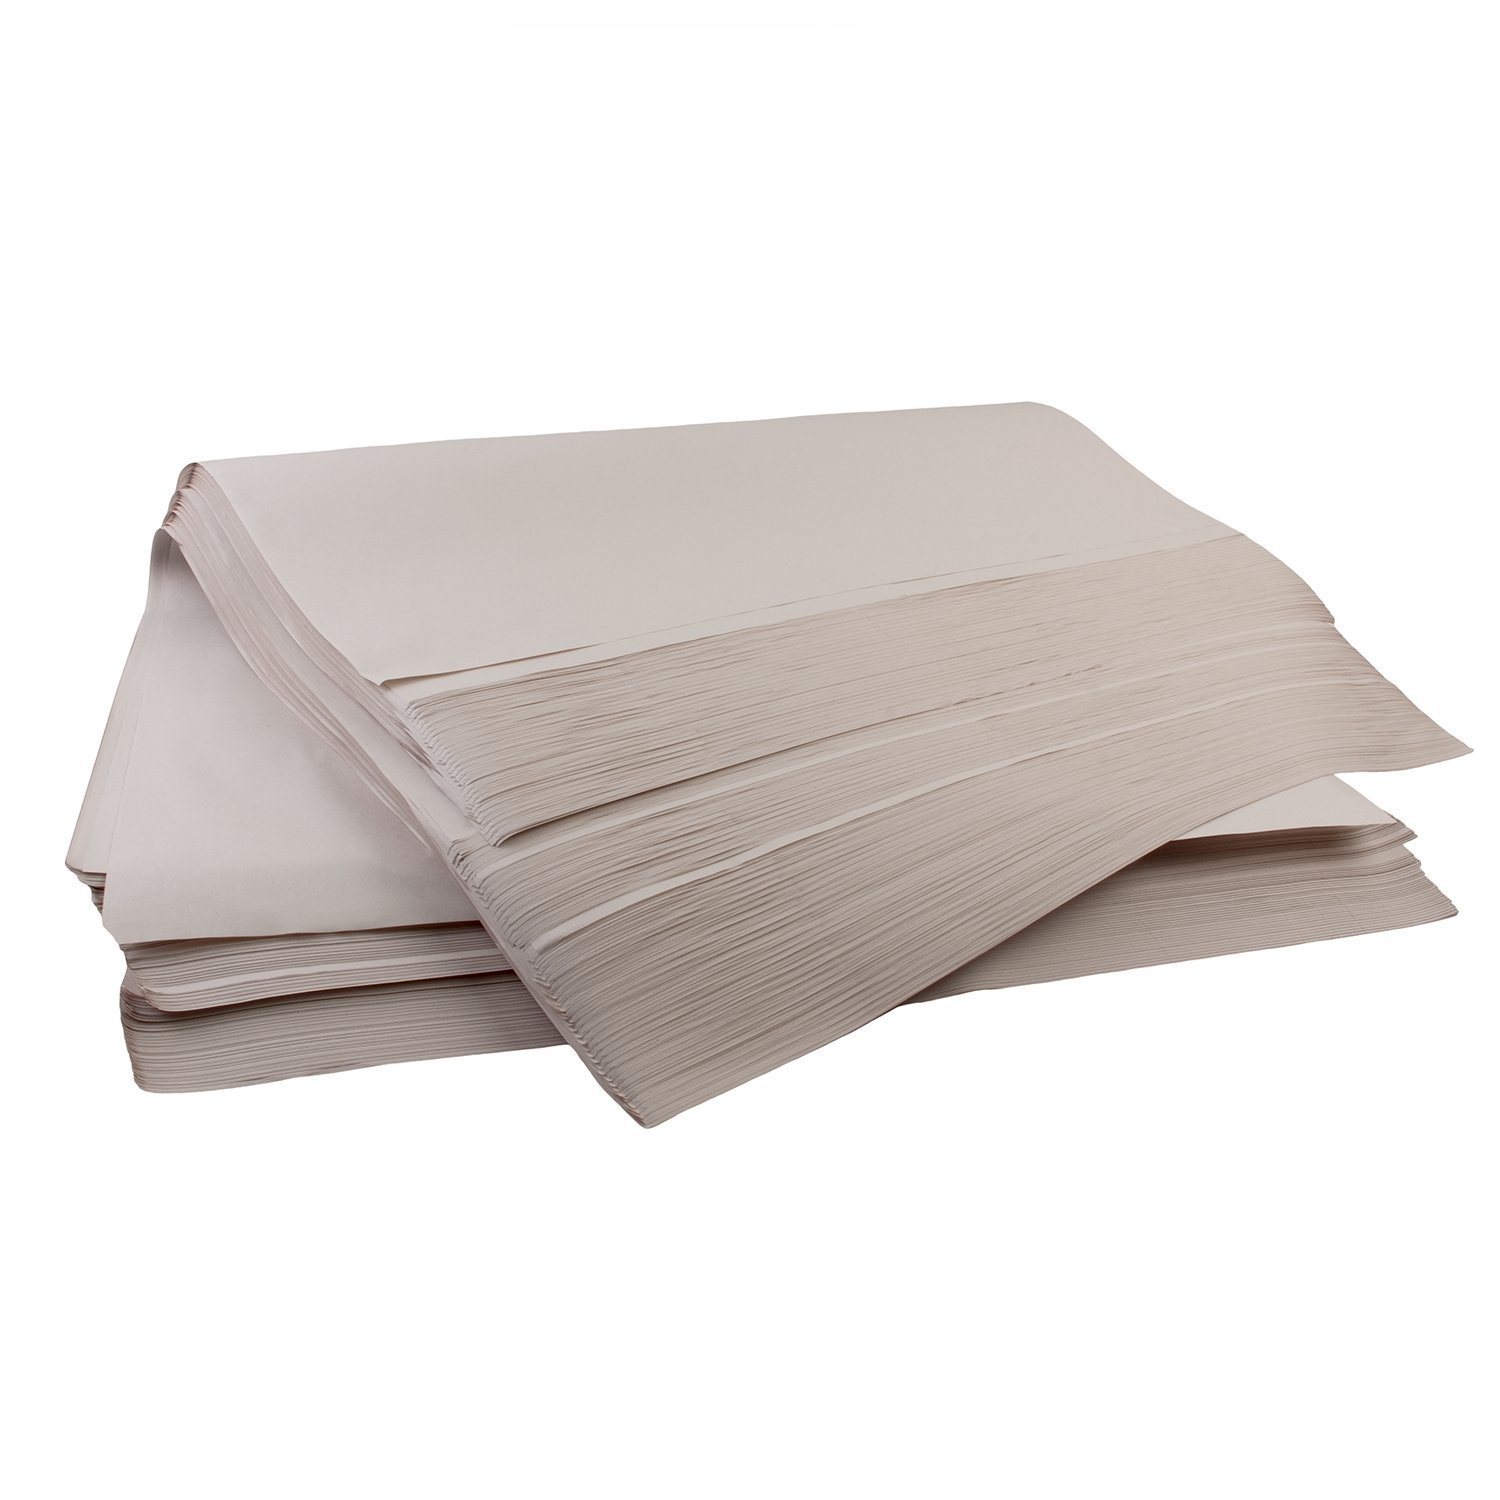 "Packing Paper - 24"" x 36""- 88 Sheets - 5 Lbs - Brand: Cheap Cheap Moving Boxes"